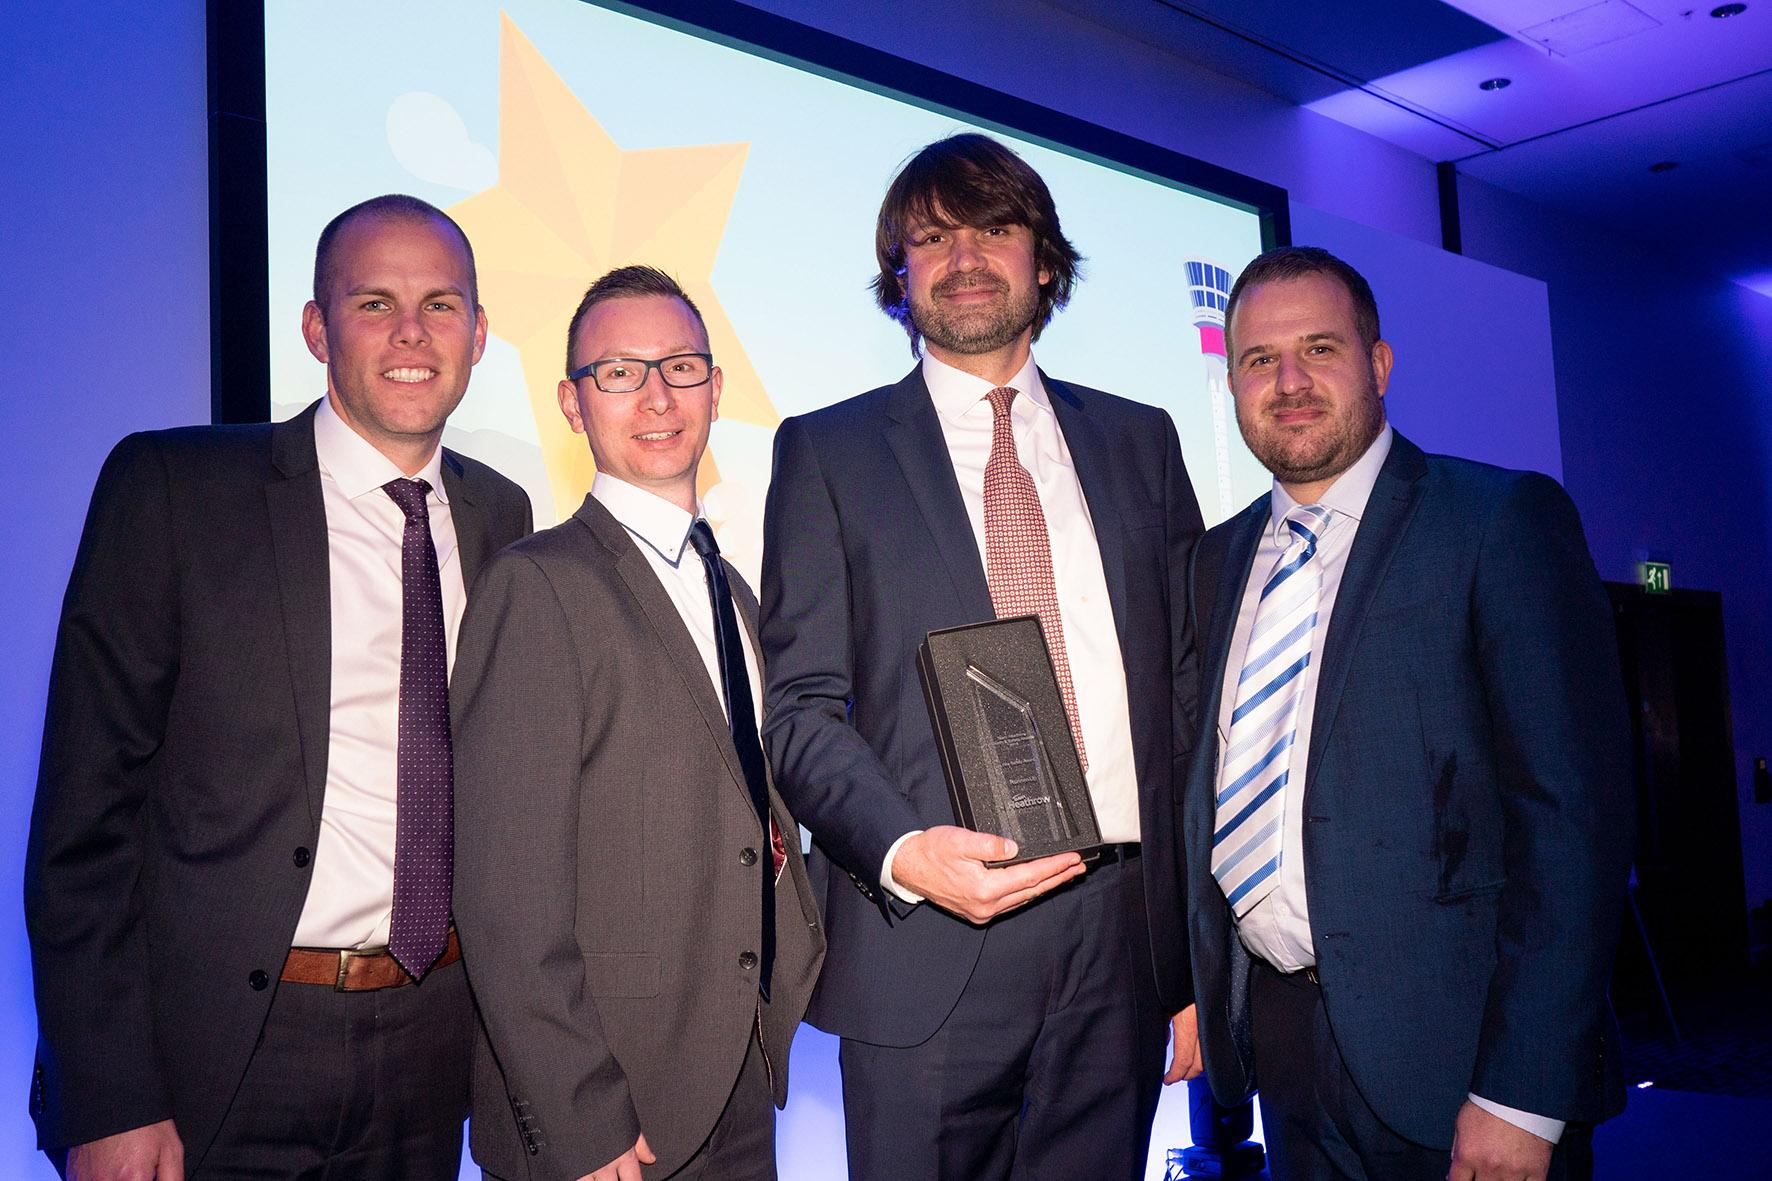 PTSG wins at Team Heathrow Health & Safety Awards